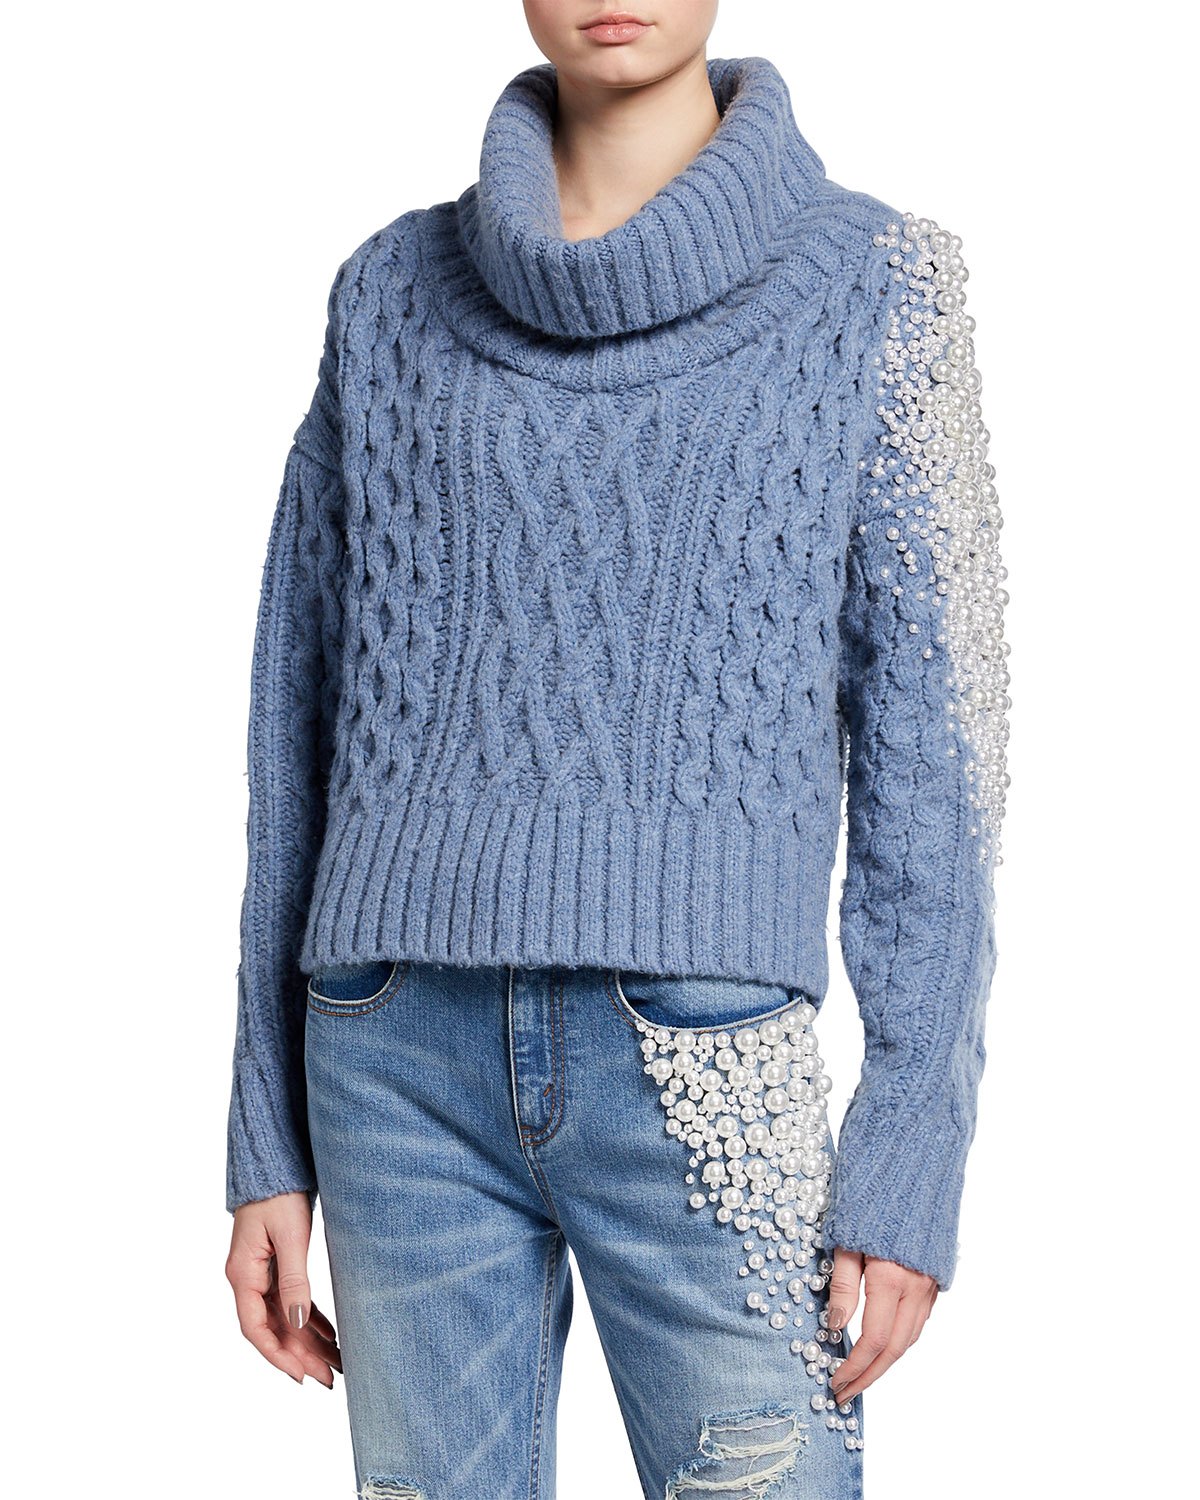 Pearly Stud Cable-Knit Sweater